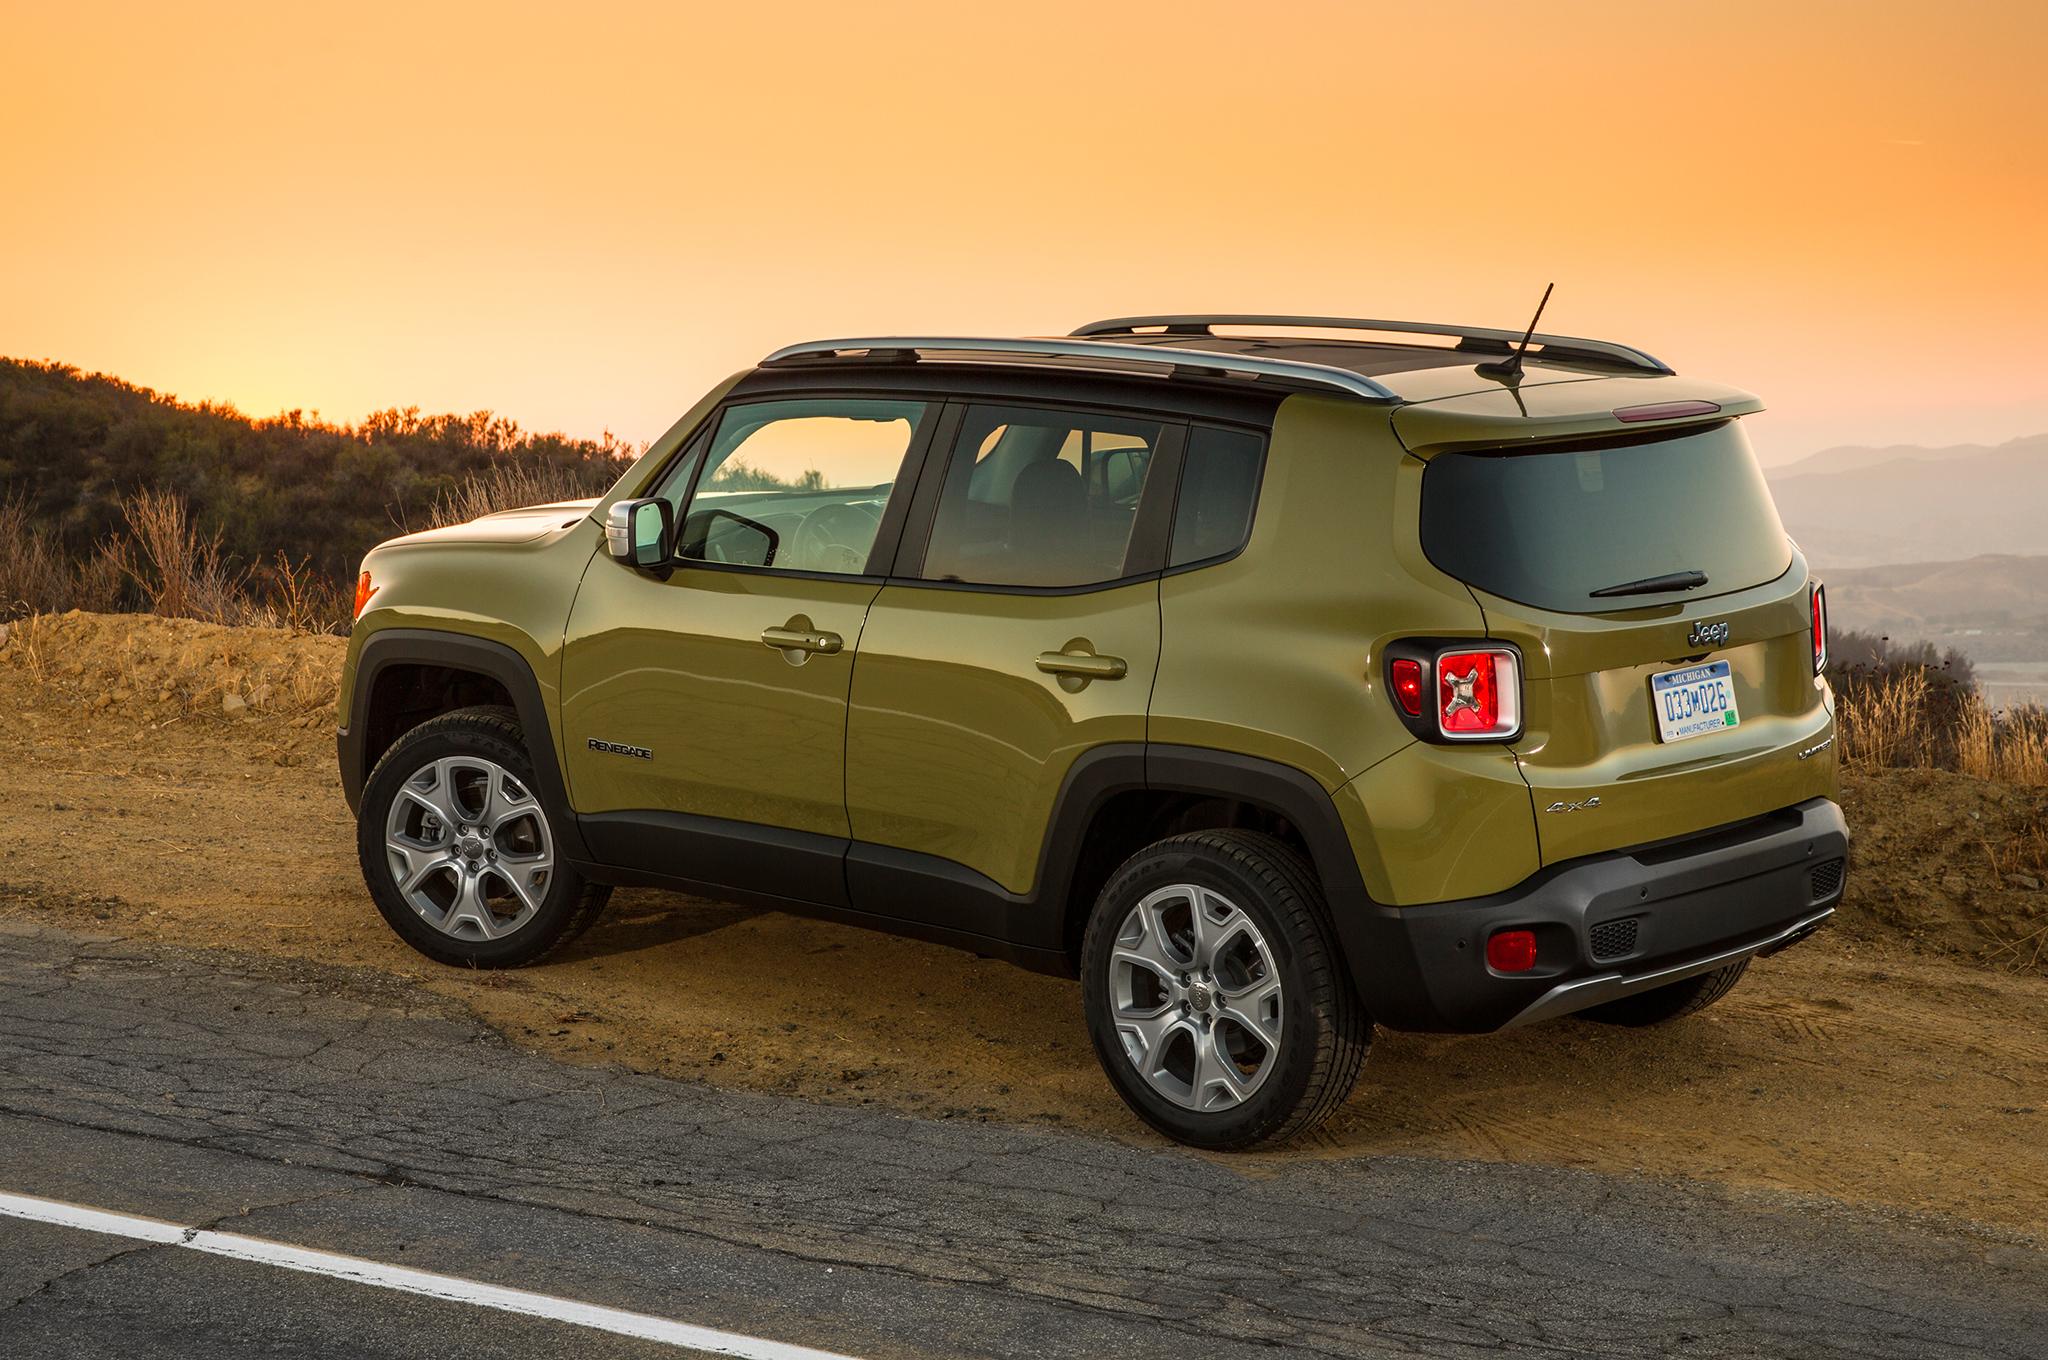 Awesome 2015 Jeep Renegade EPA Fuel Economy Hits 22/31 MPG With 2.4 Liter